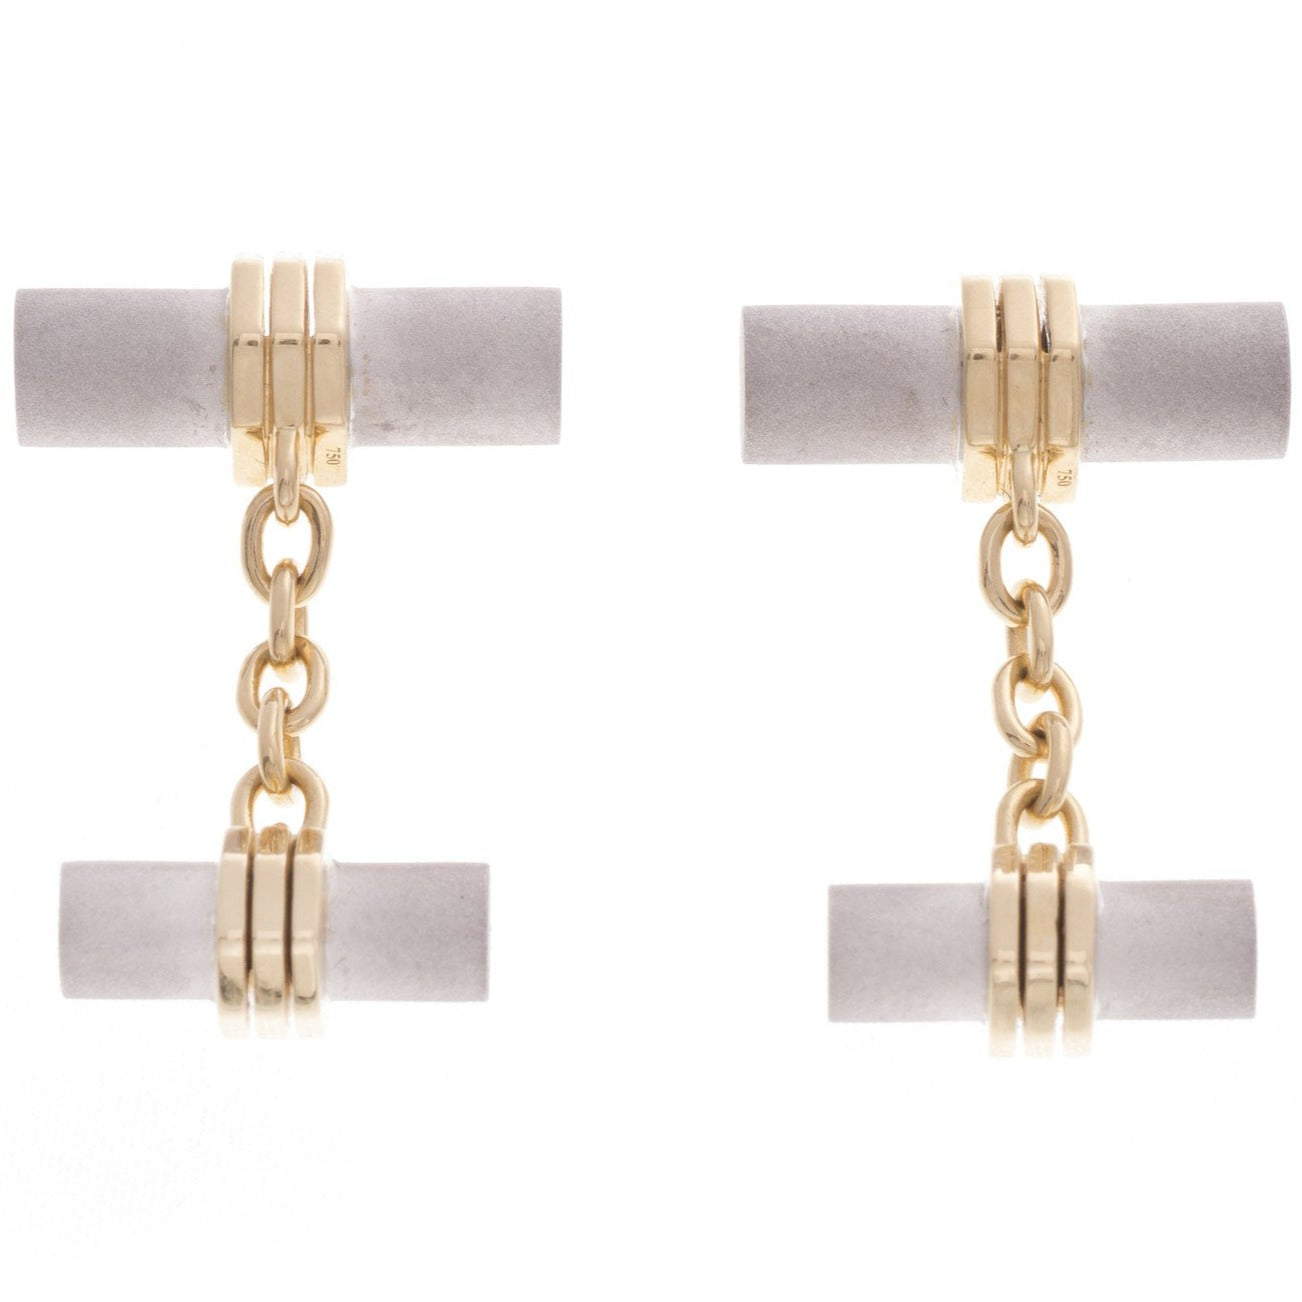 18ct White & Yellow Gold Men's Cufflinks, Minar Jewellers - 3